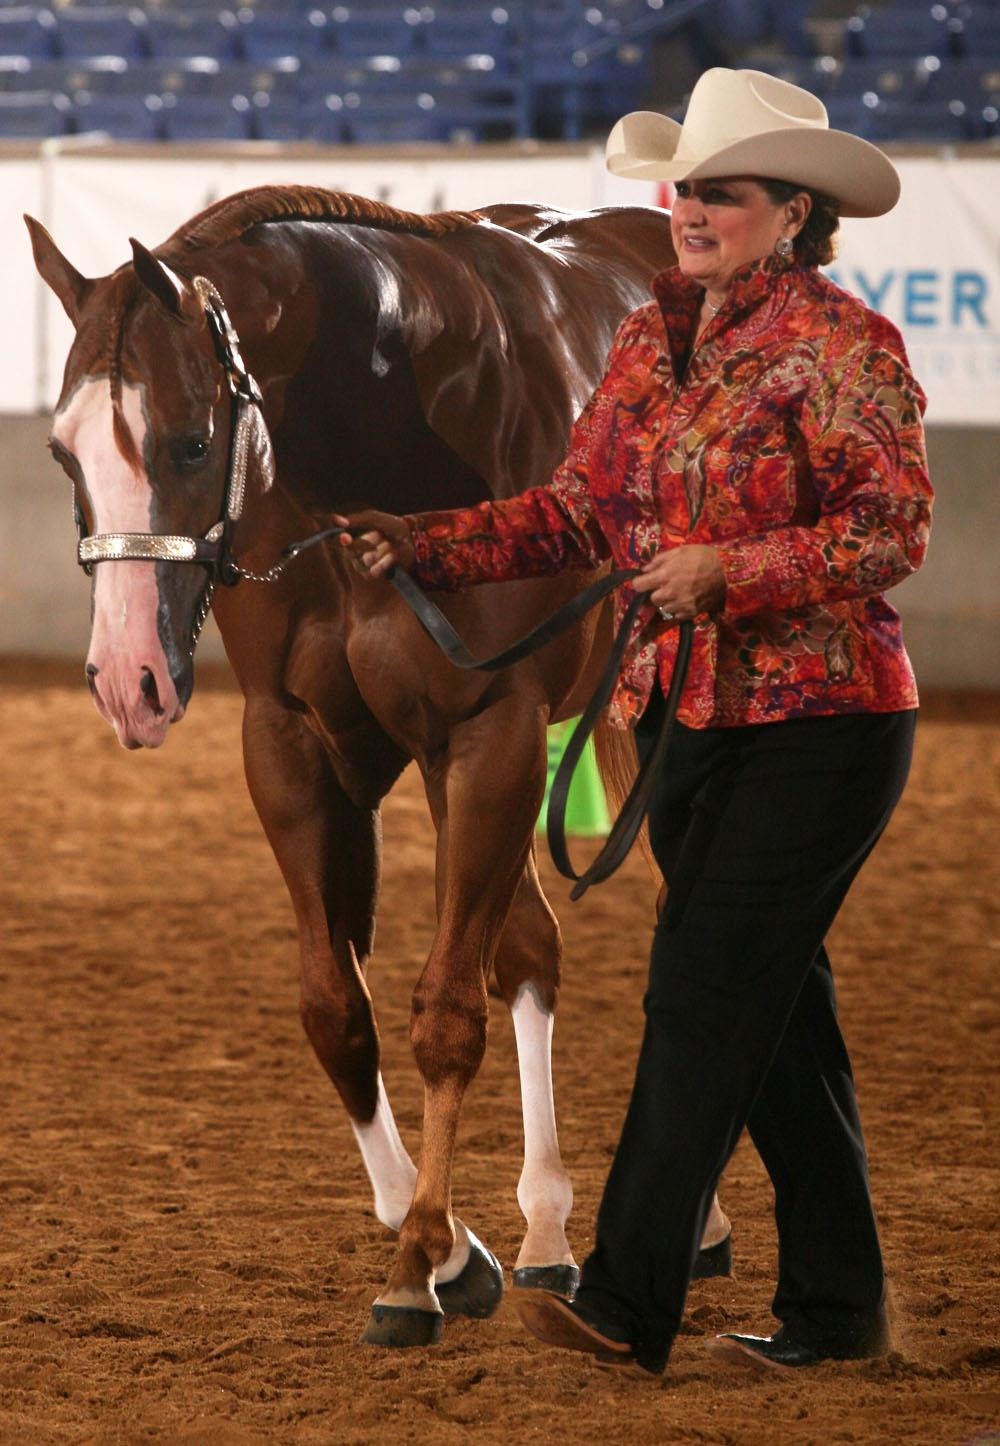 Photo courtesy of The American Quarter Horse Journal.